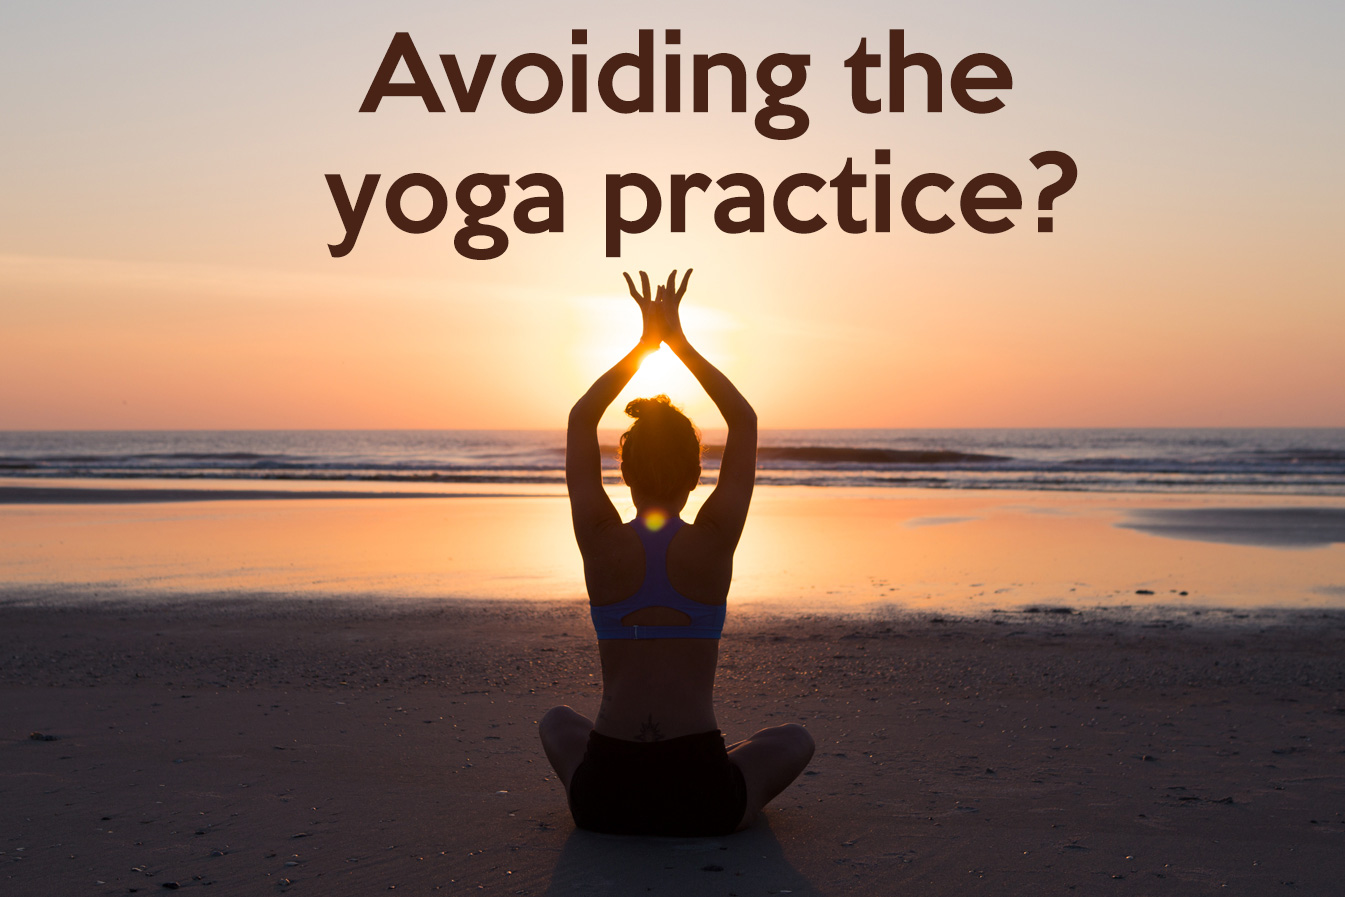 Pin it! What to do when you are avoiding the yoga practice